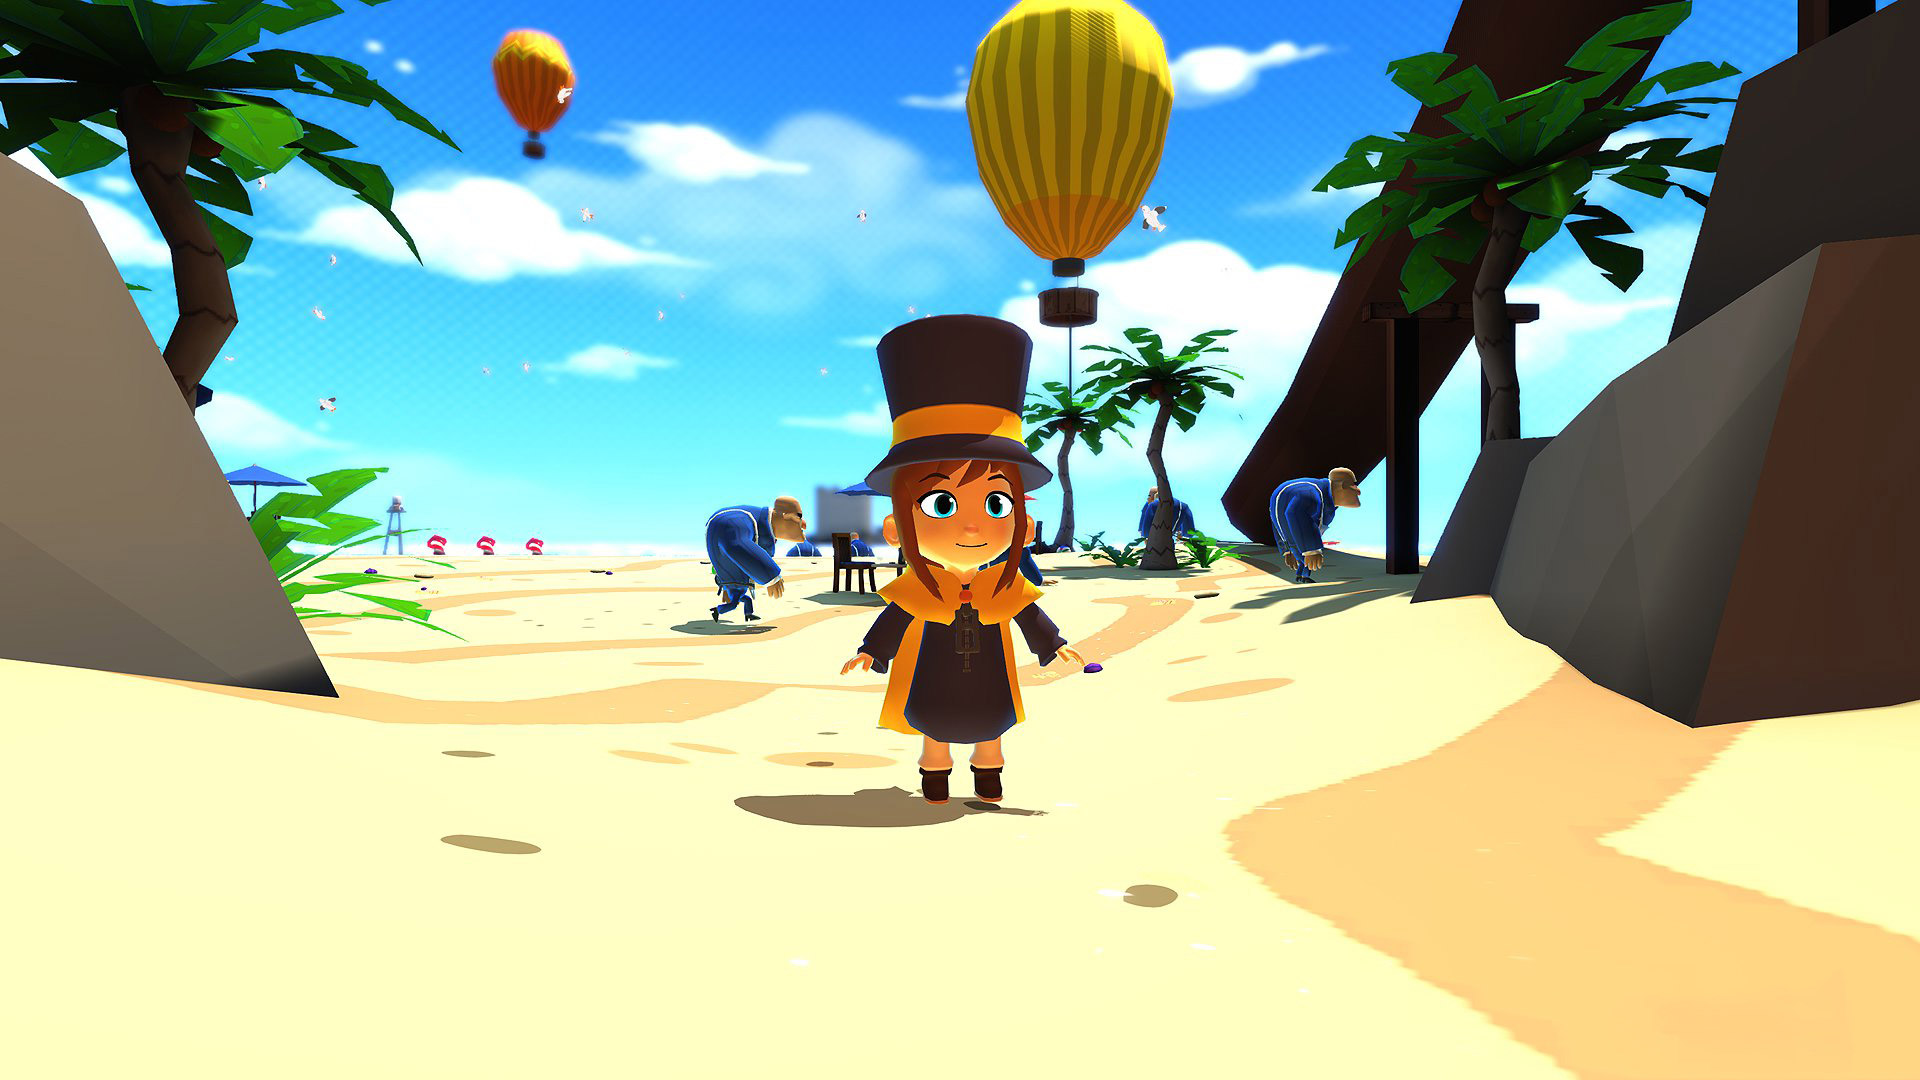 A Hat in Time Wallpaper in 1920x1080